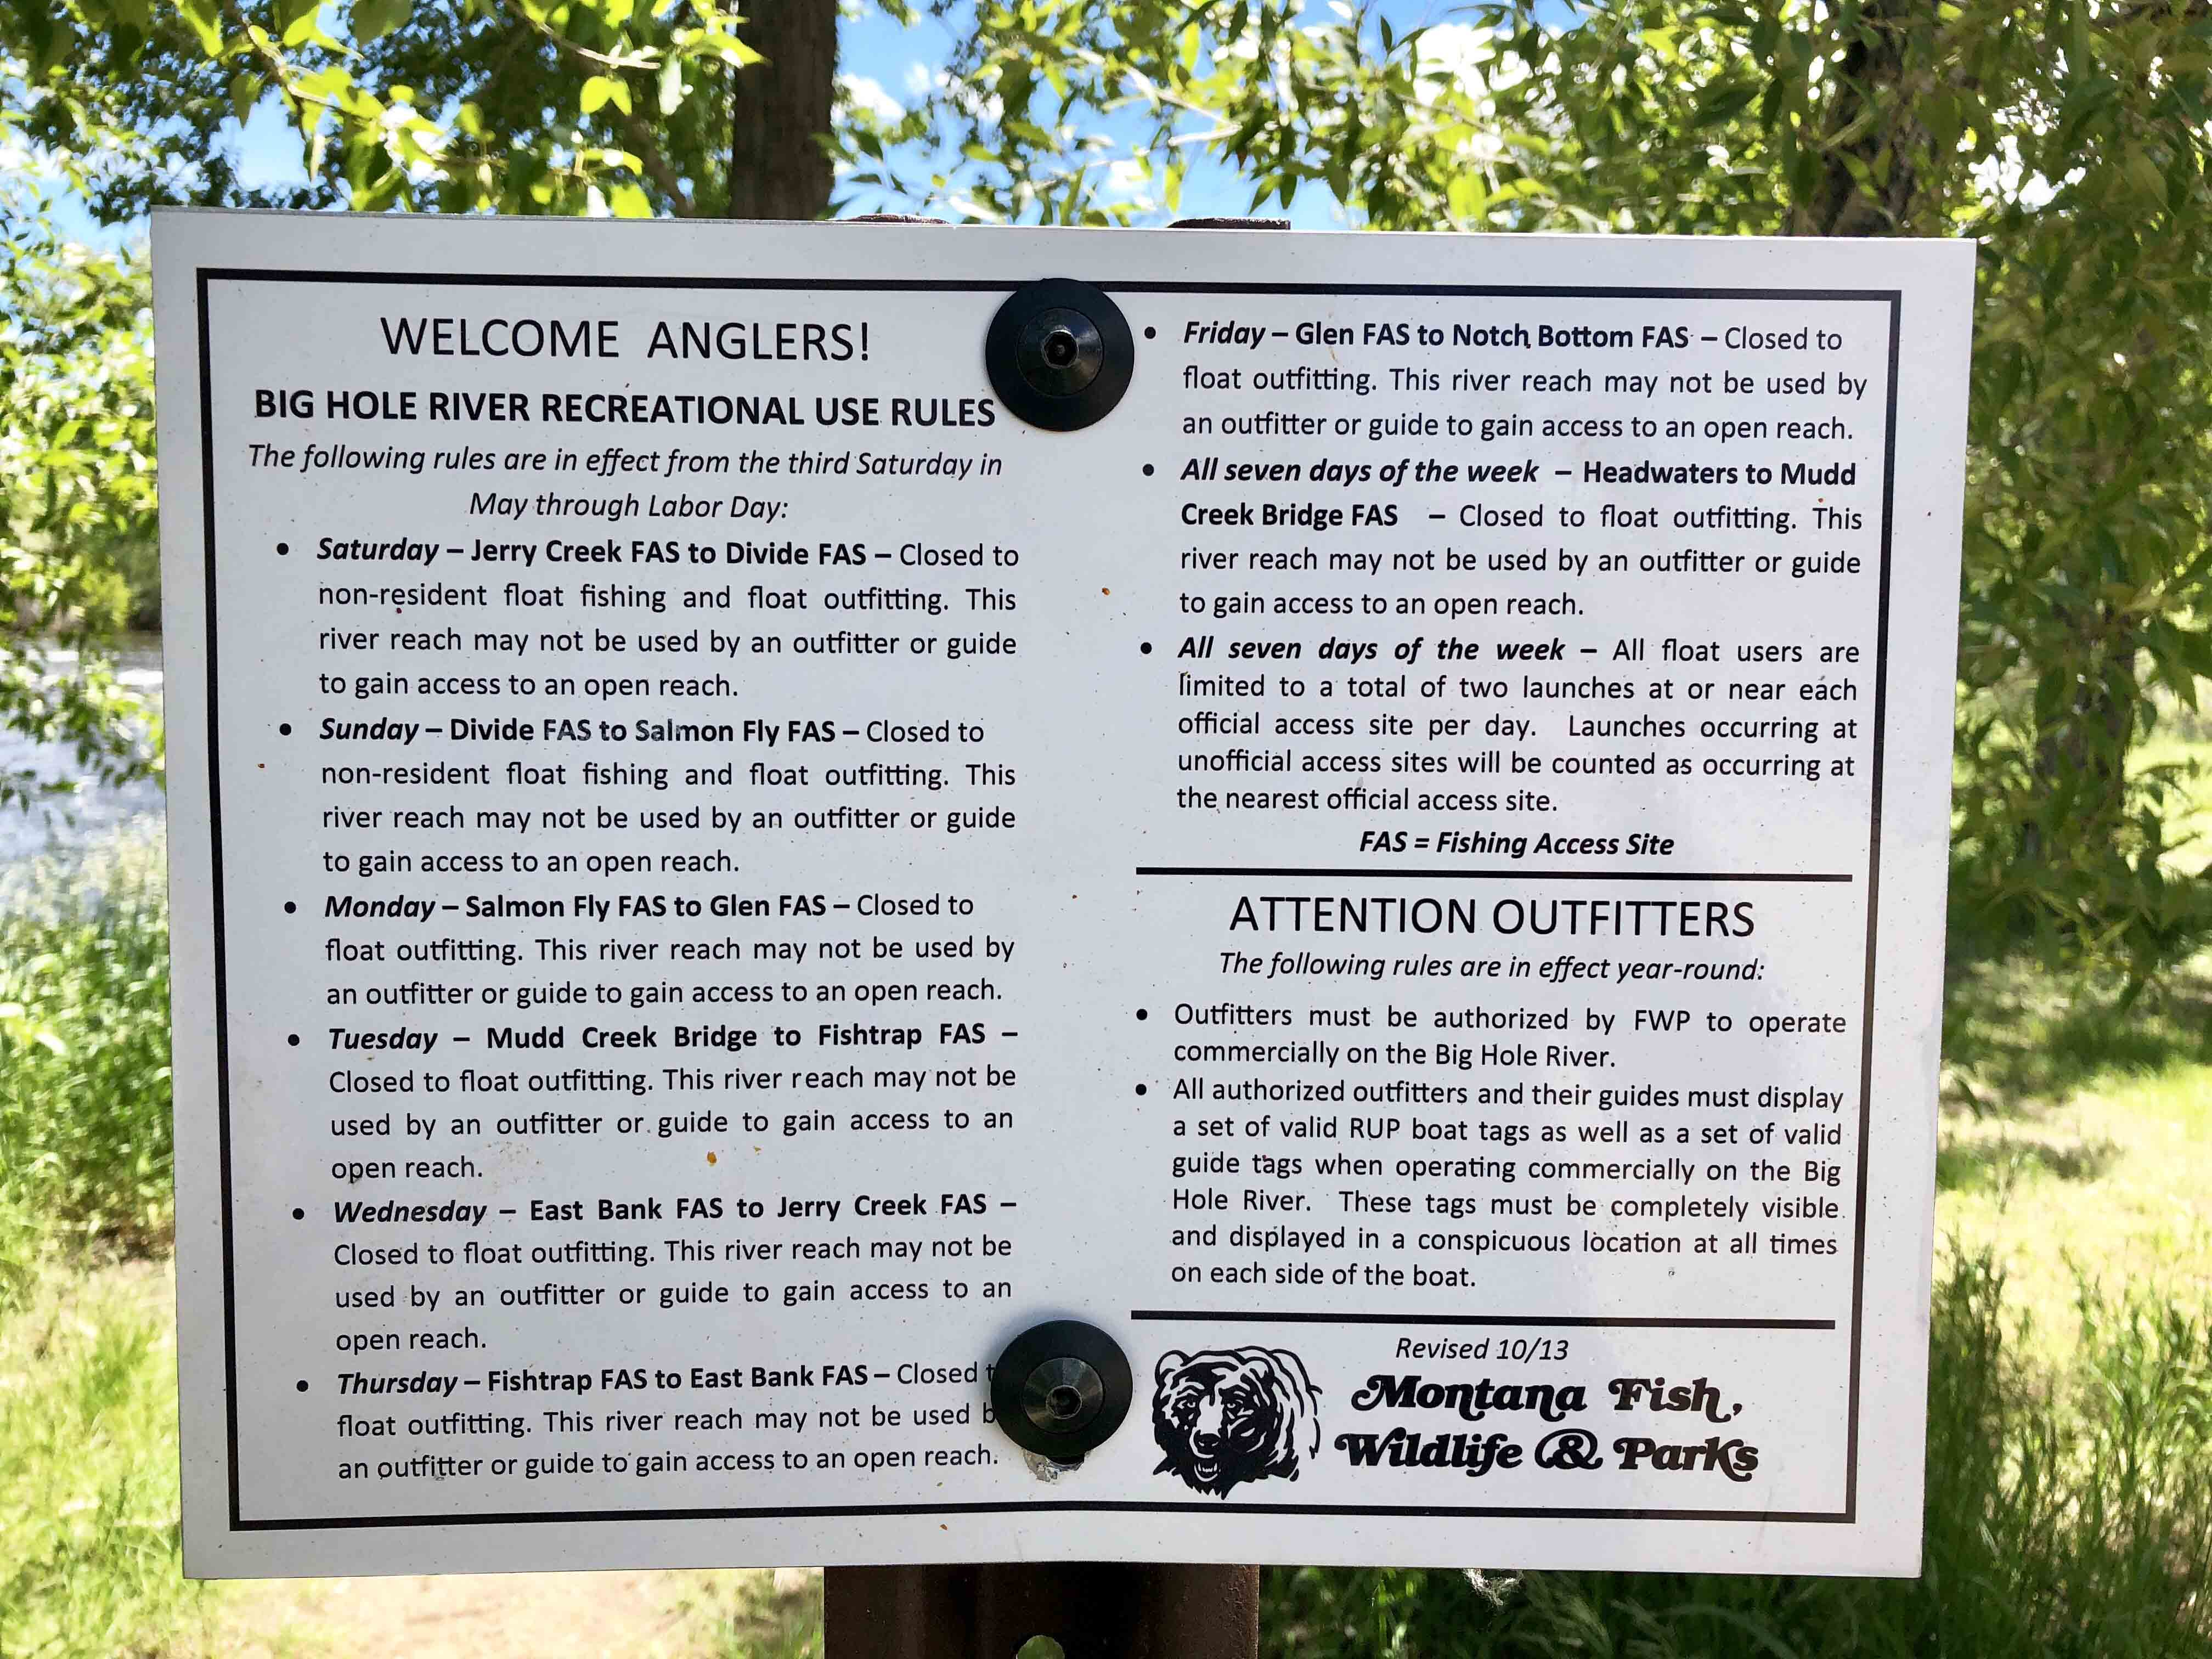 Rules for fishing the Big Hole River in Montana Full